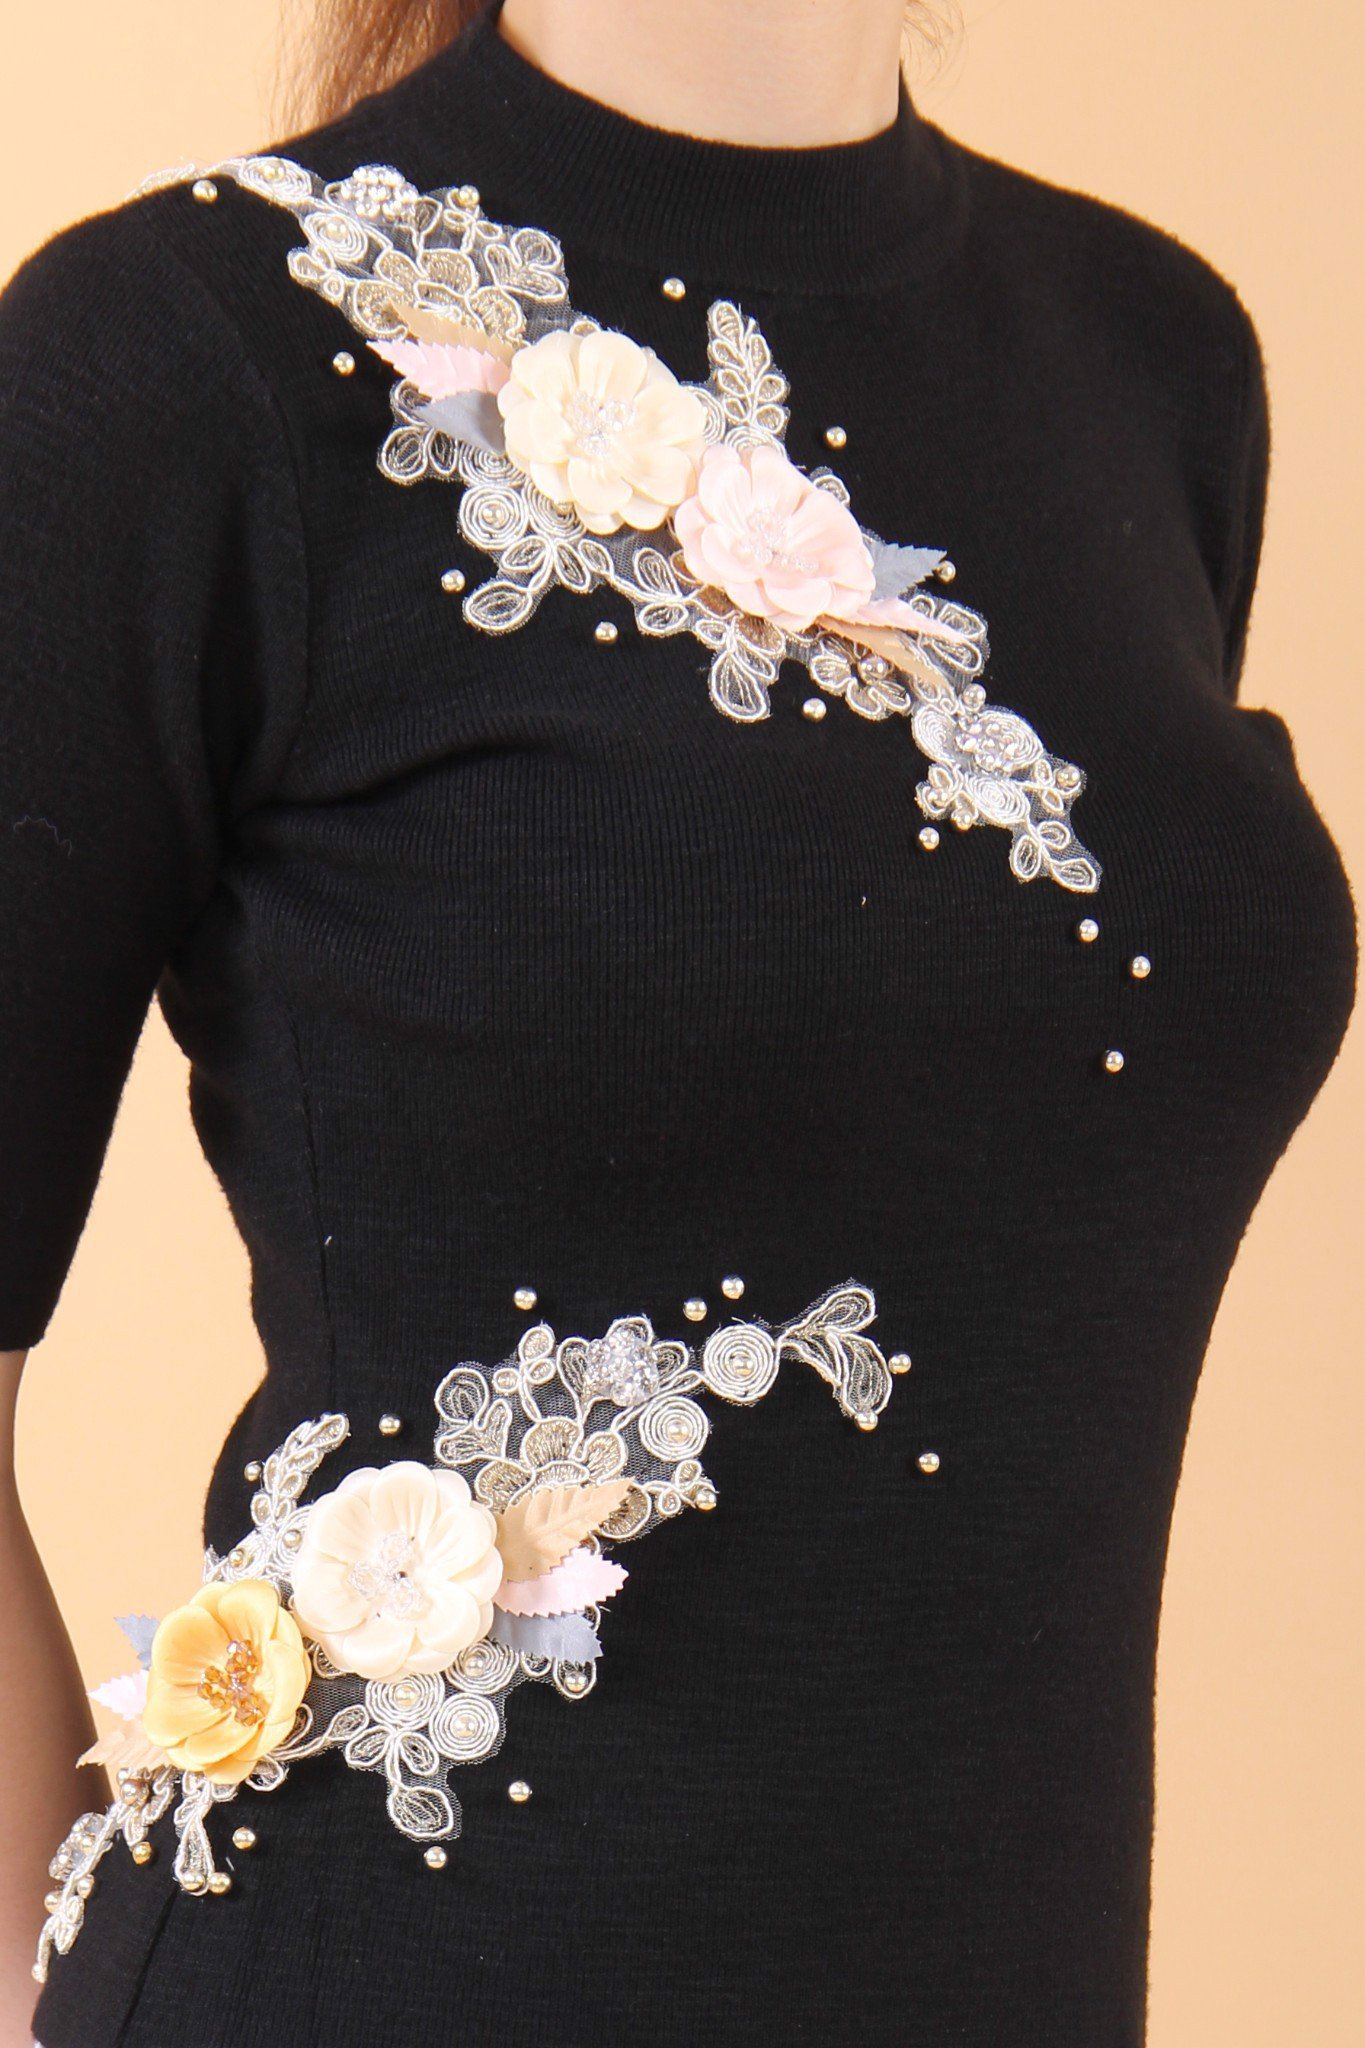 3D fabric flowers black high neck fitted top